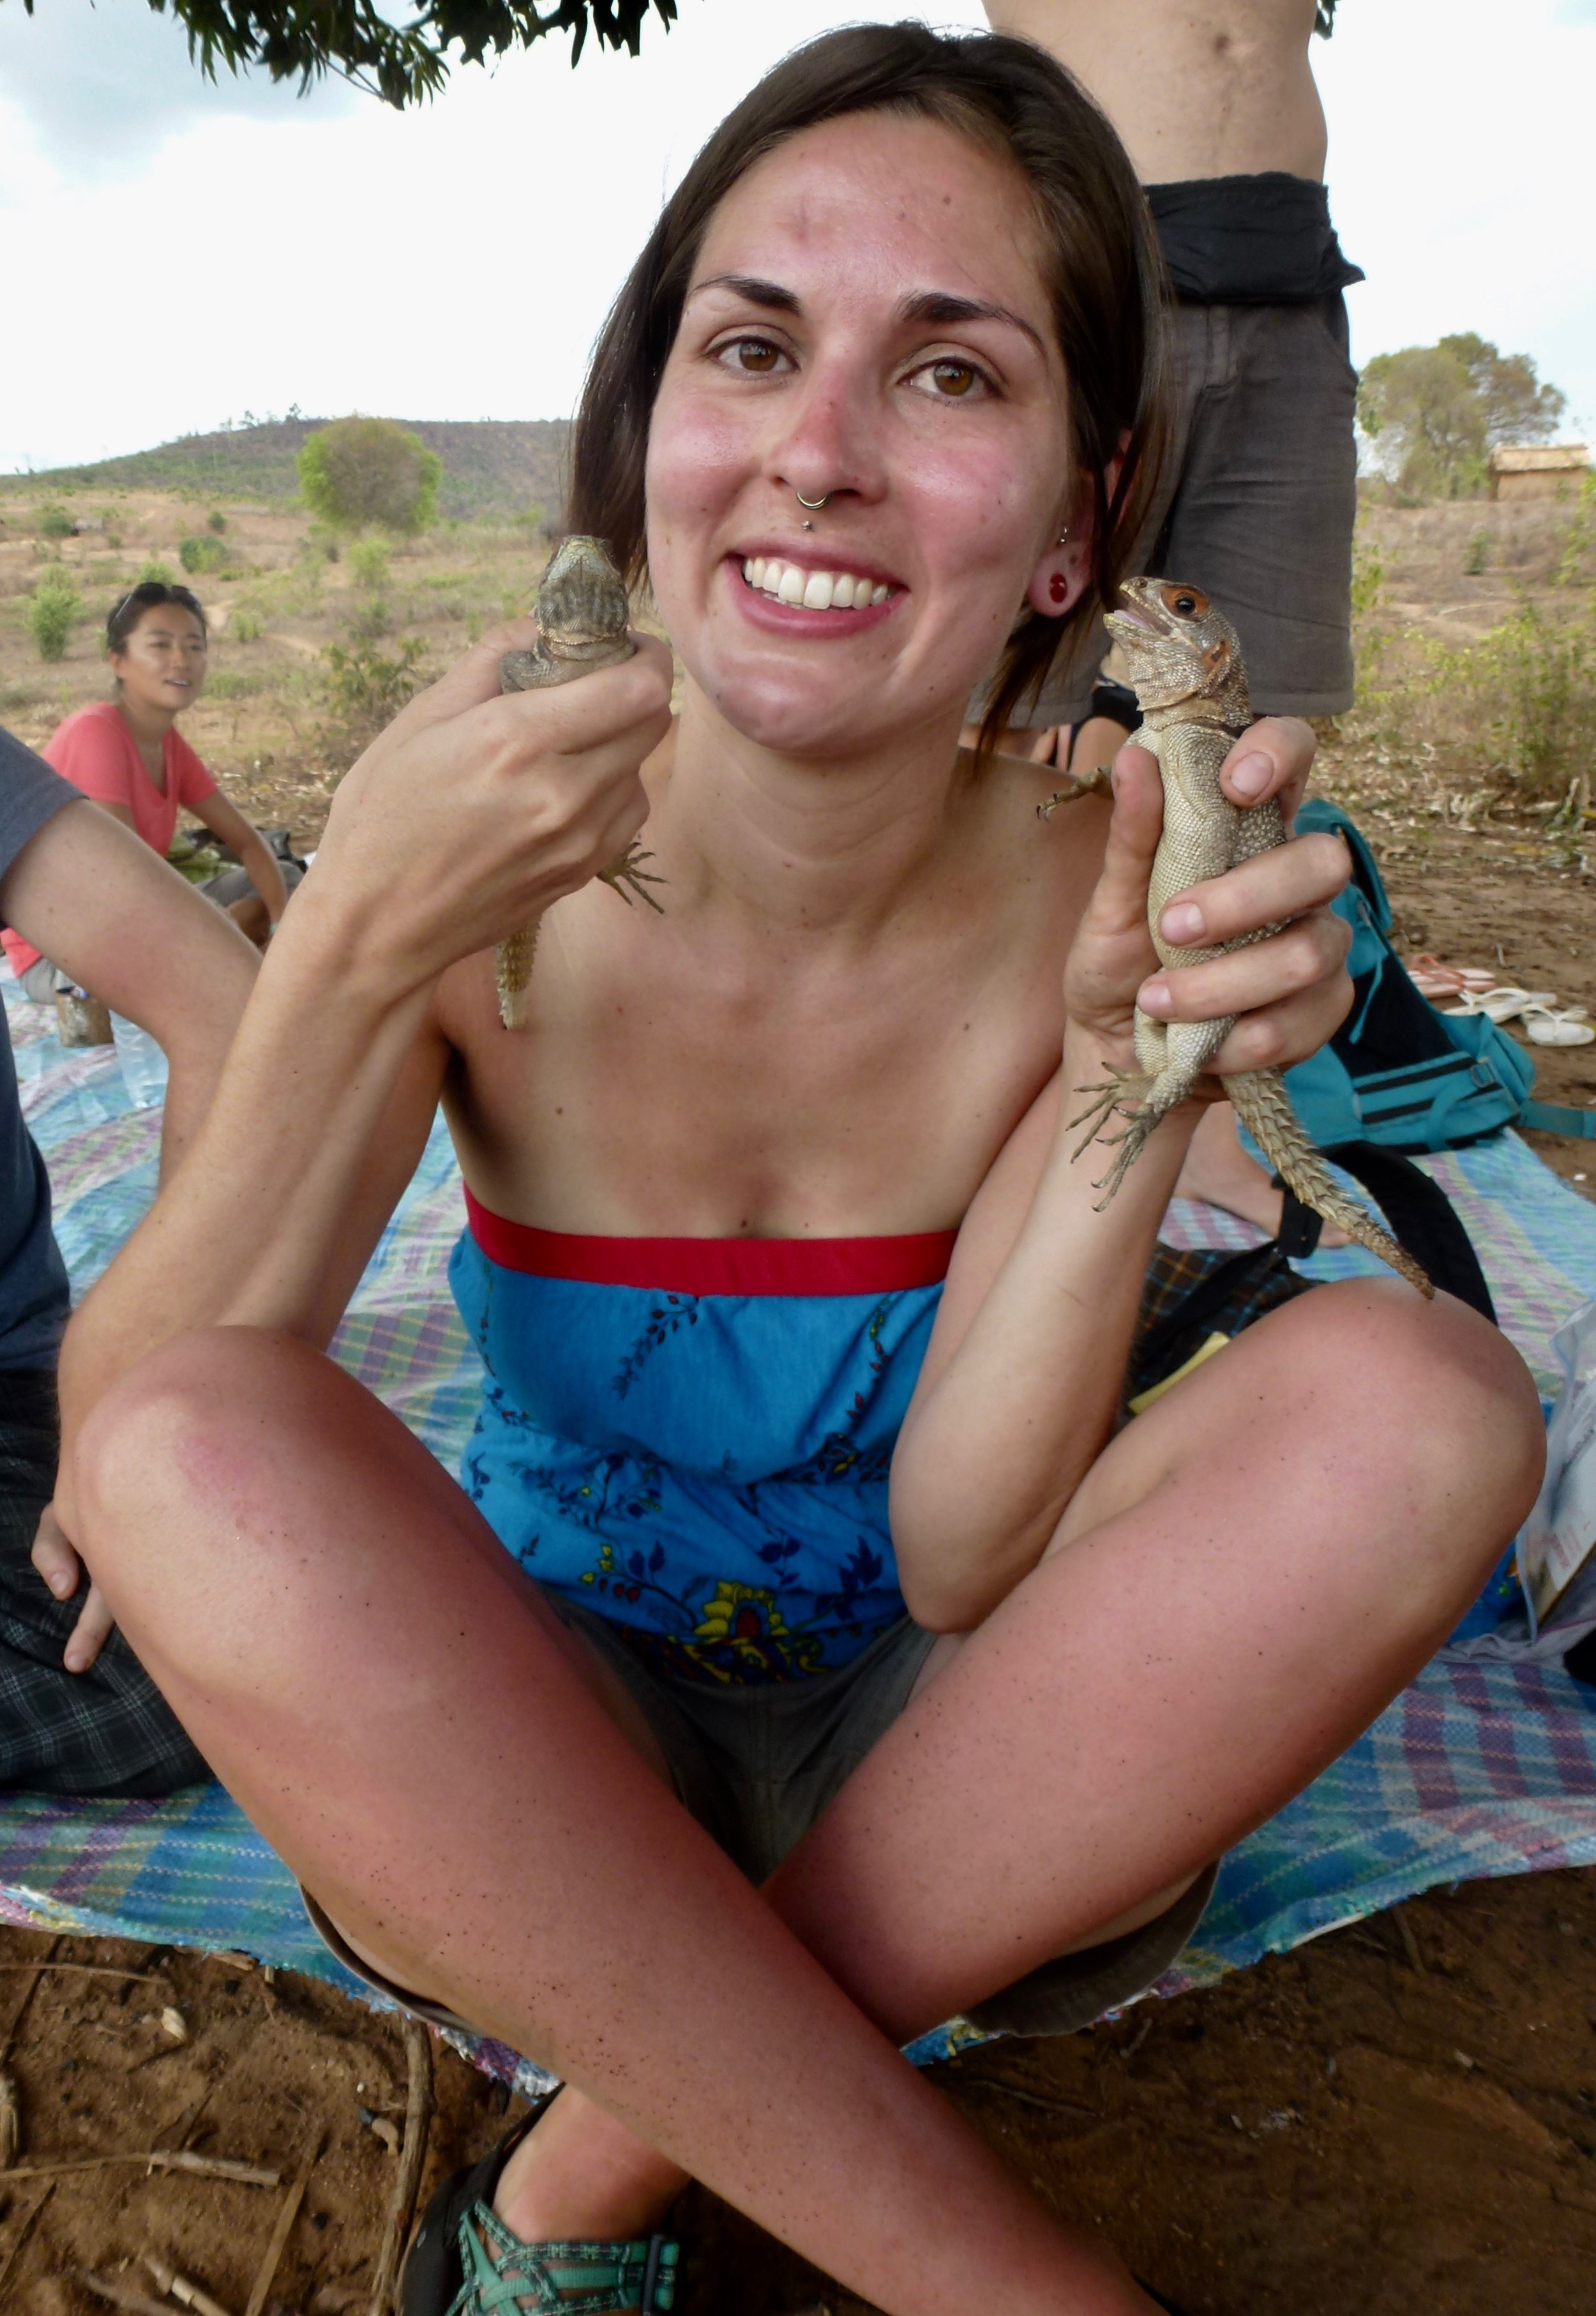 Here I am with the worst sunburn of my life and two iguanas.